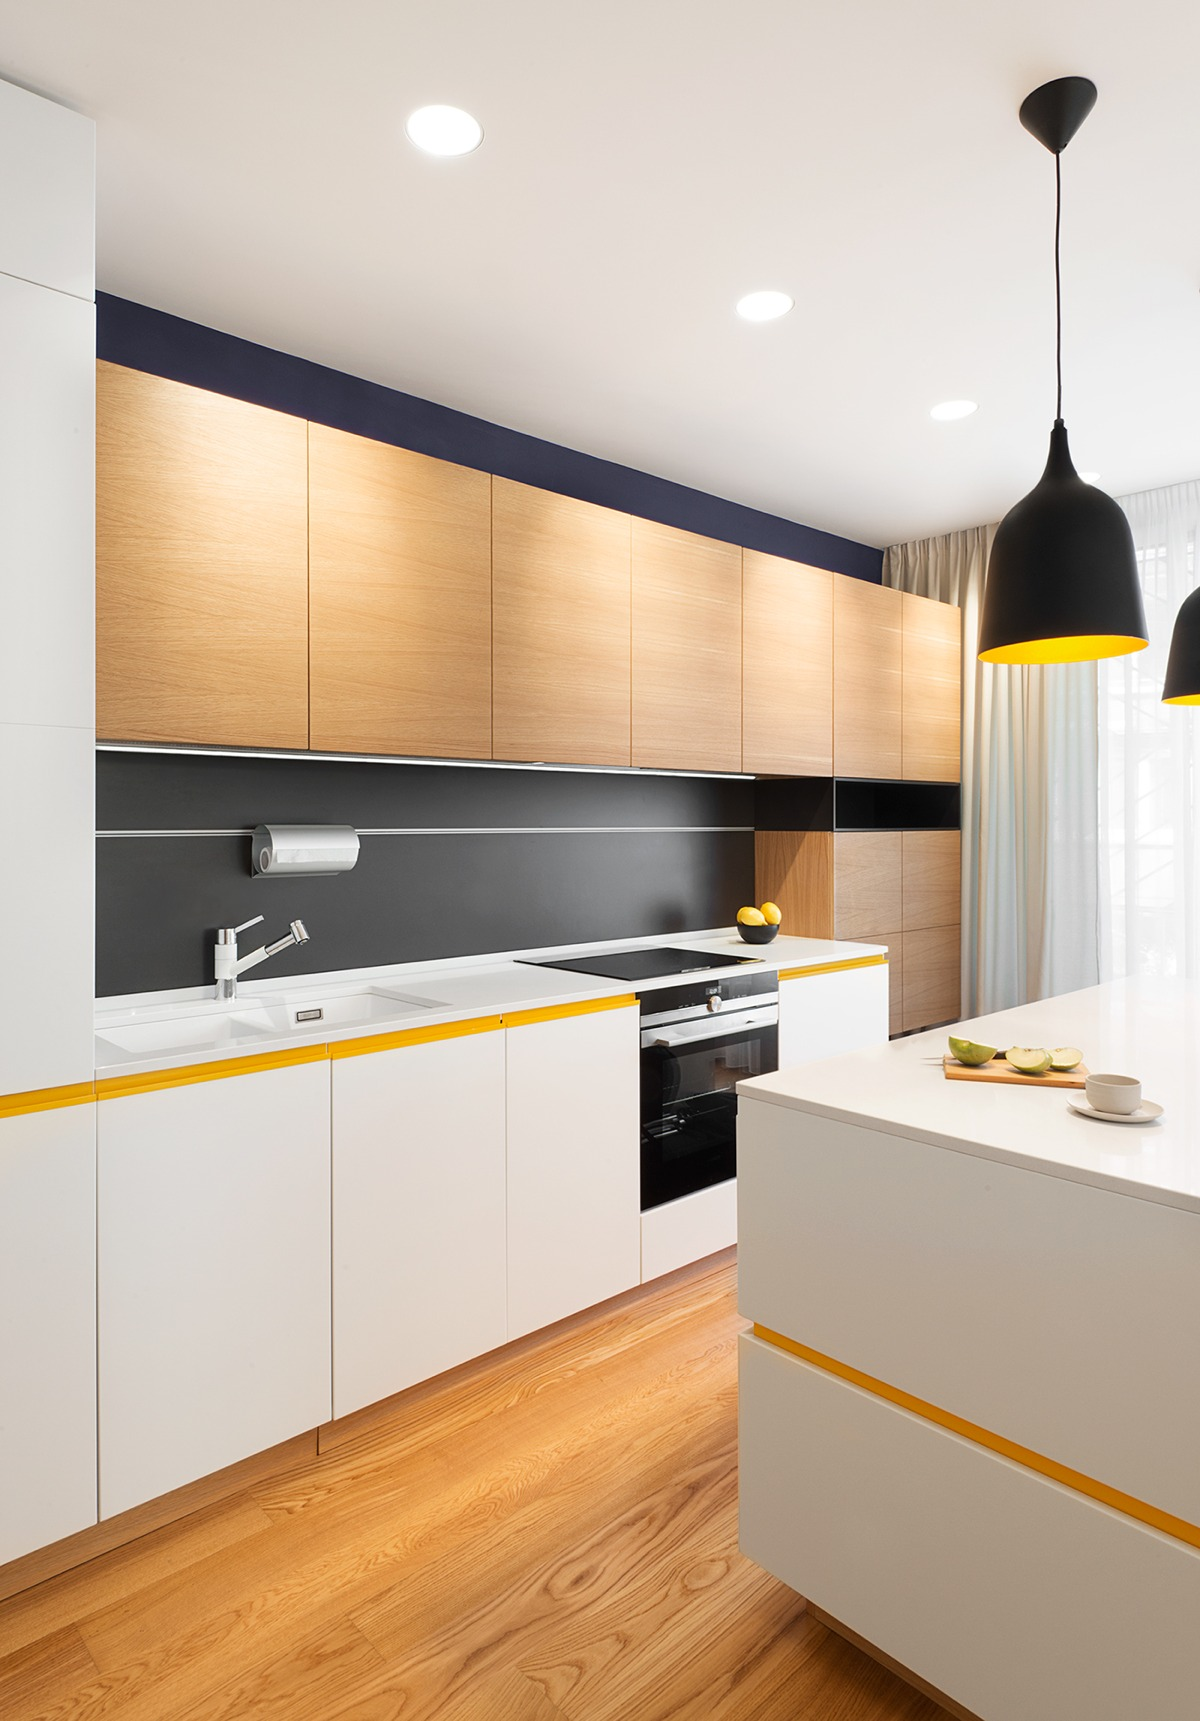 Modern Retro Inspired Kitchen Design - A mid century inspired apartment with modern geometric accents